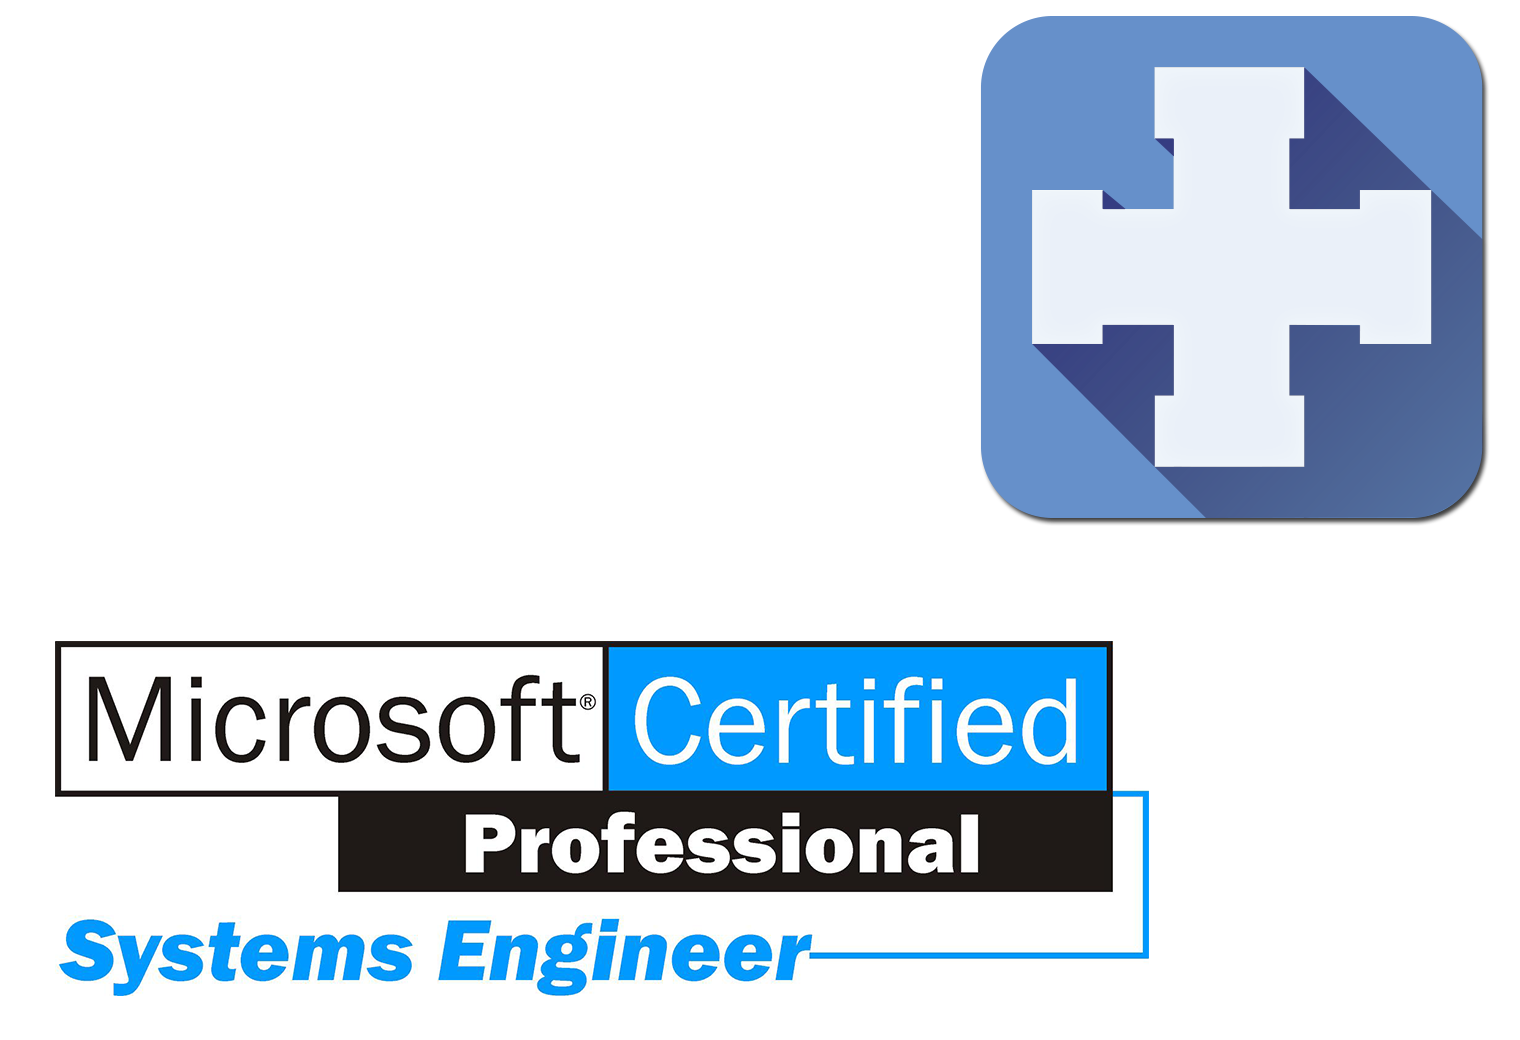 Mcse Microsoft Certified Systems Engineer By Ironline